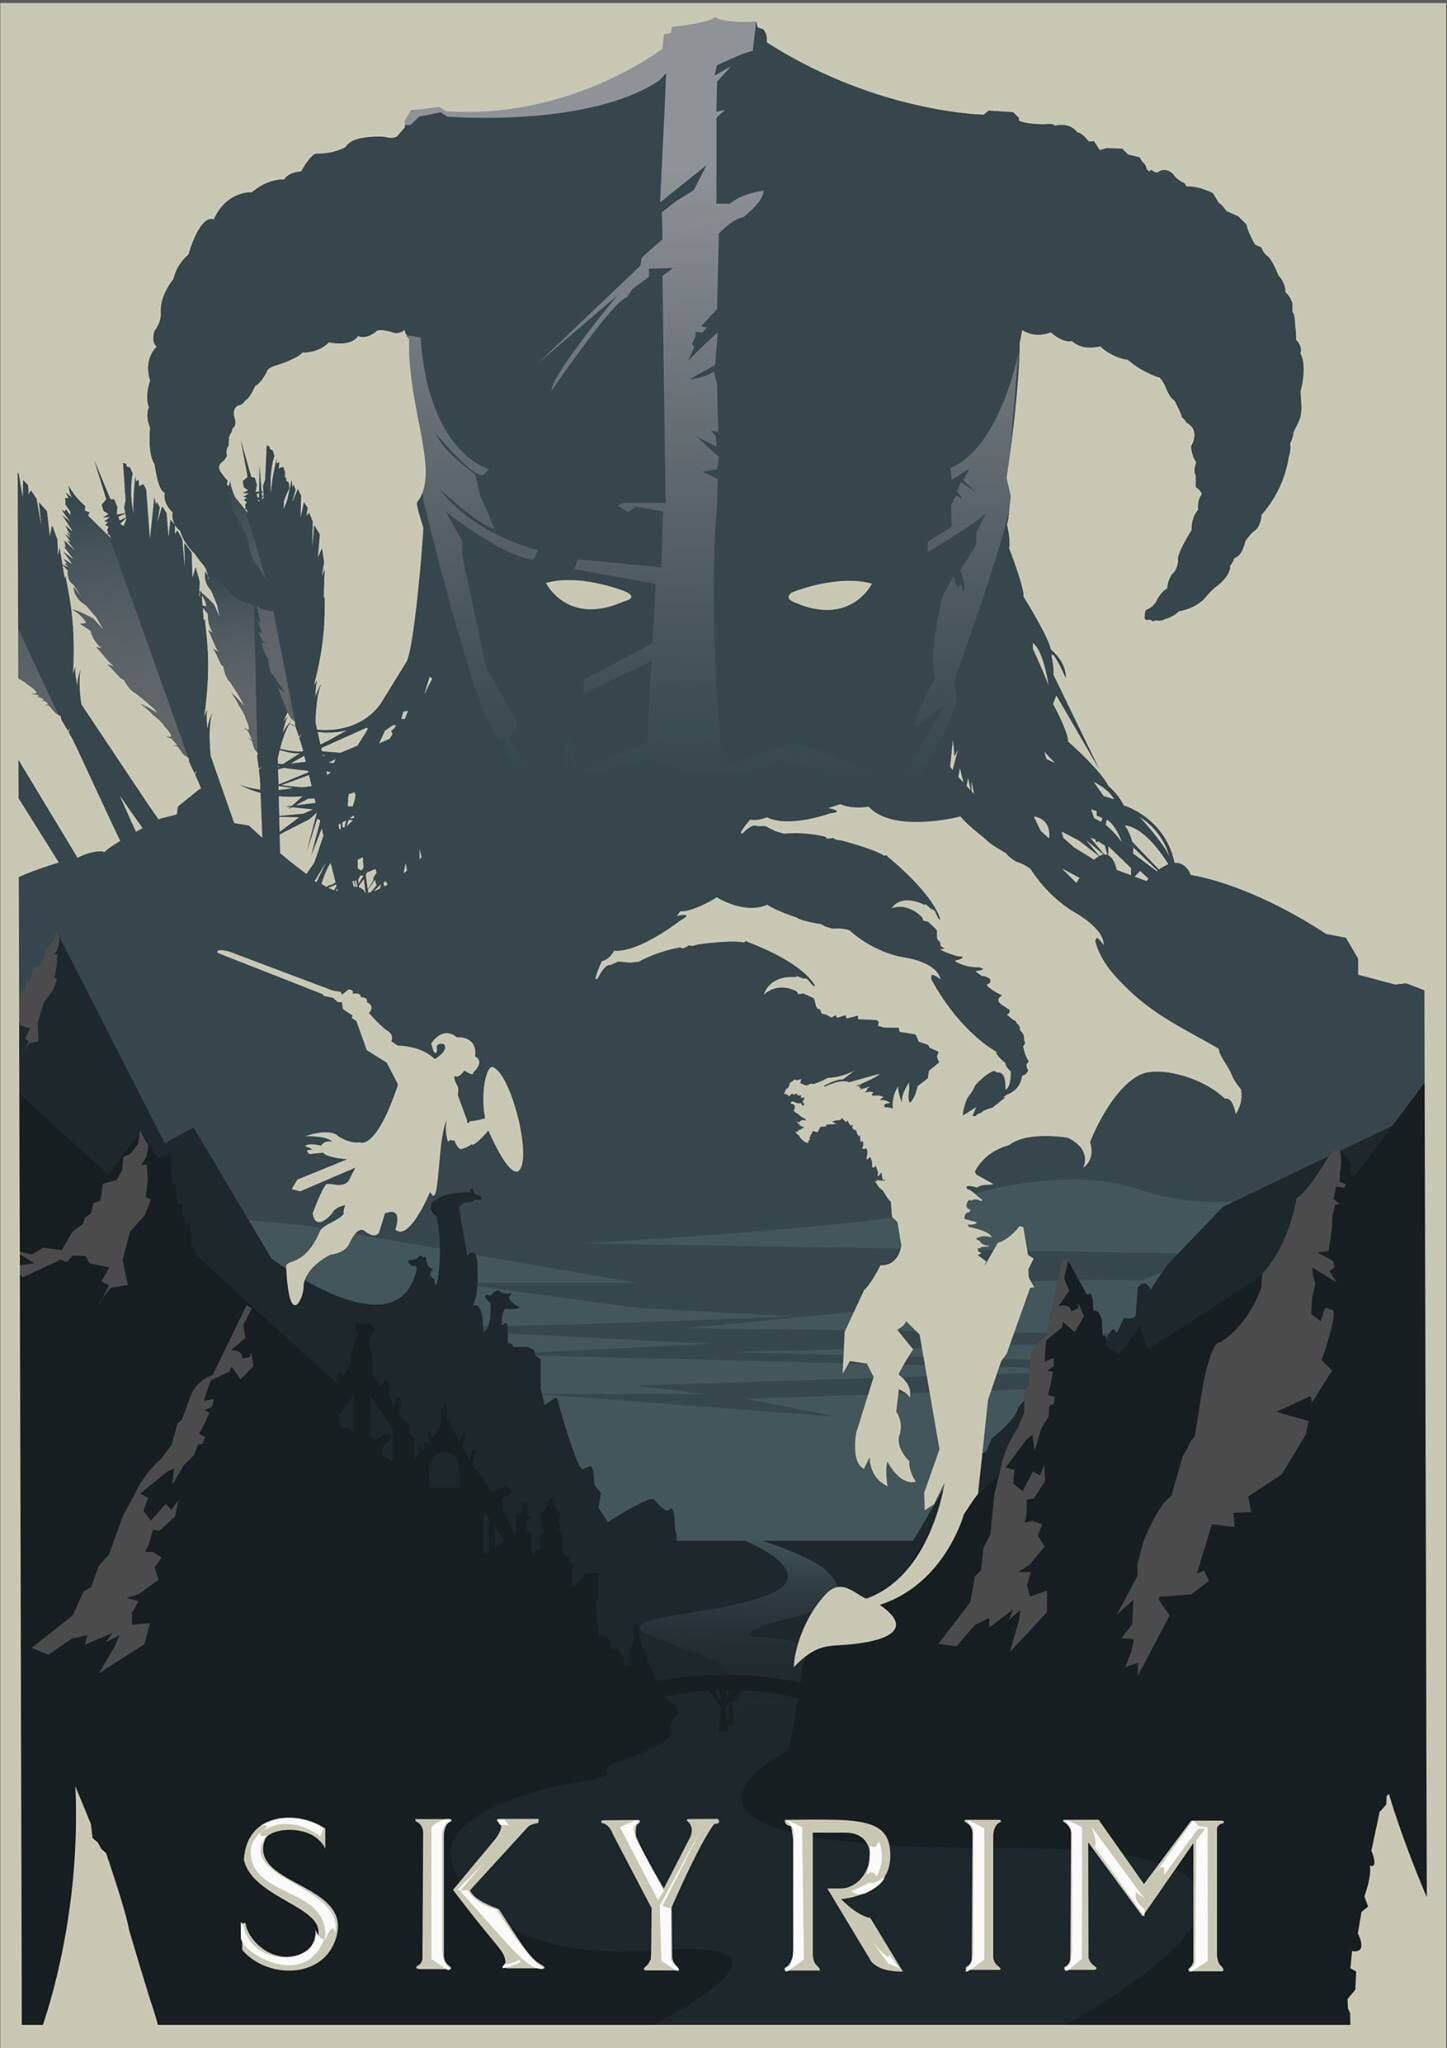 The Elder Scrolls V Skyrim Poster The Elder Scrolls V Skyrim Poster The Elder Scrolls 1080p Wallpaper Hdwal Skyrim Concept Art Skyrim Art Skyrim Wallpaper